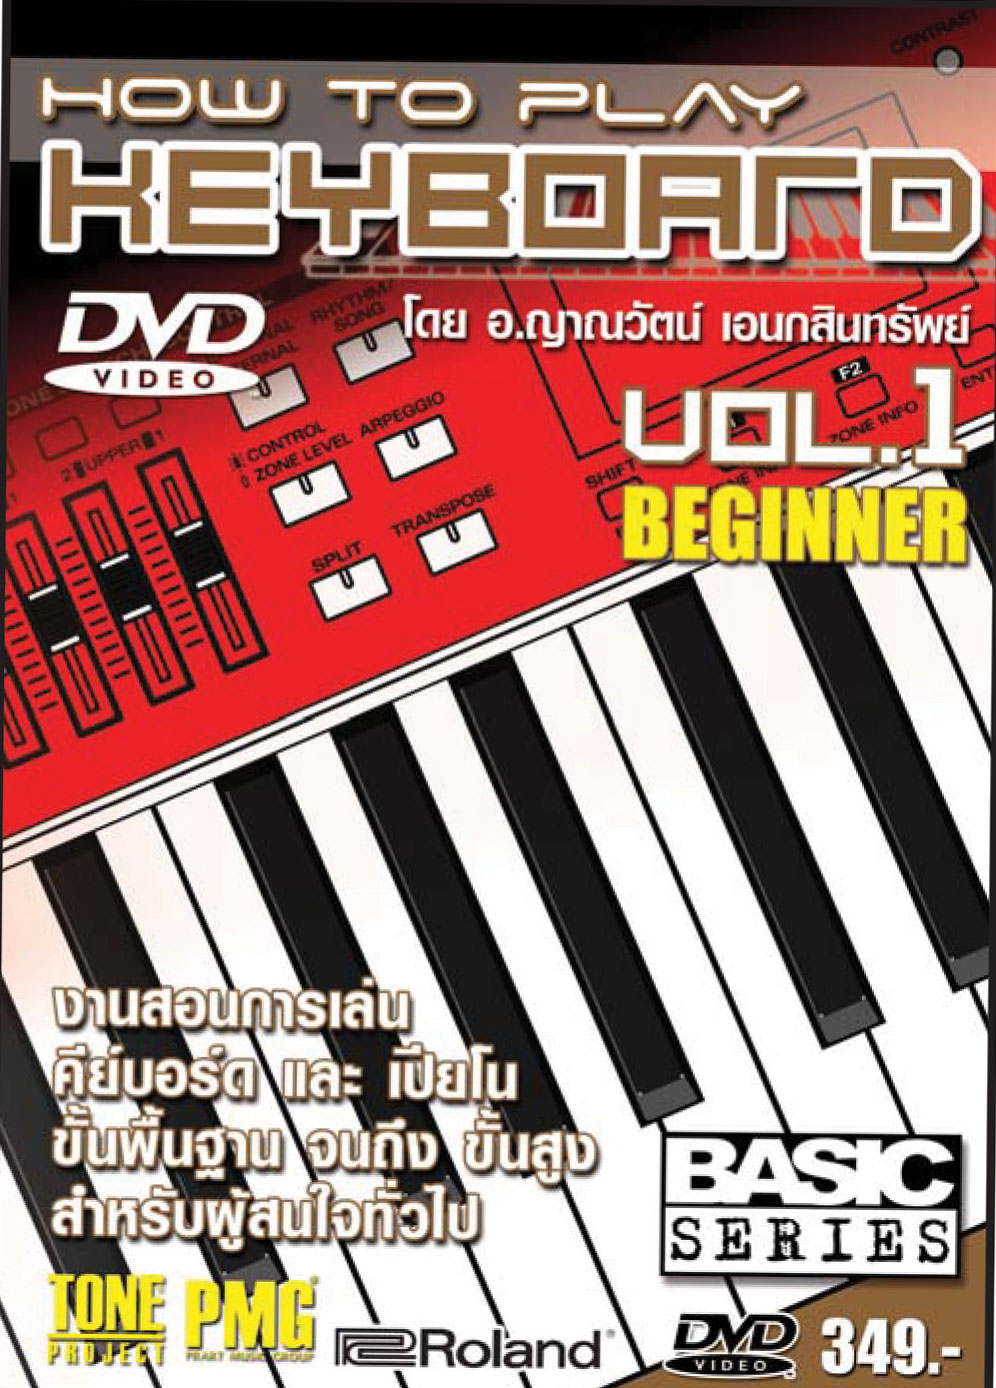 How To Play Keyboard Vol.1 Beginner (DVD)